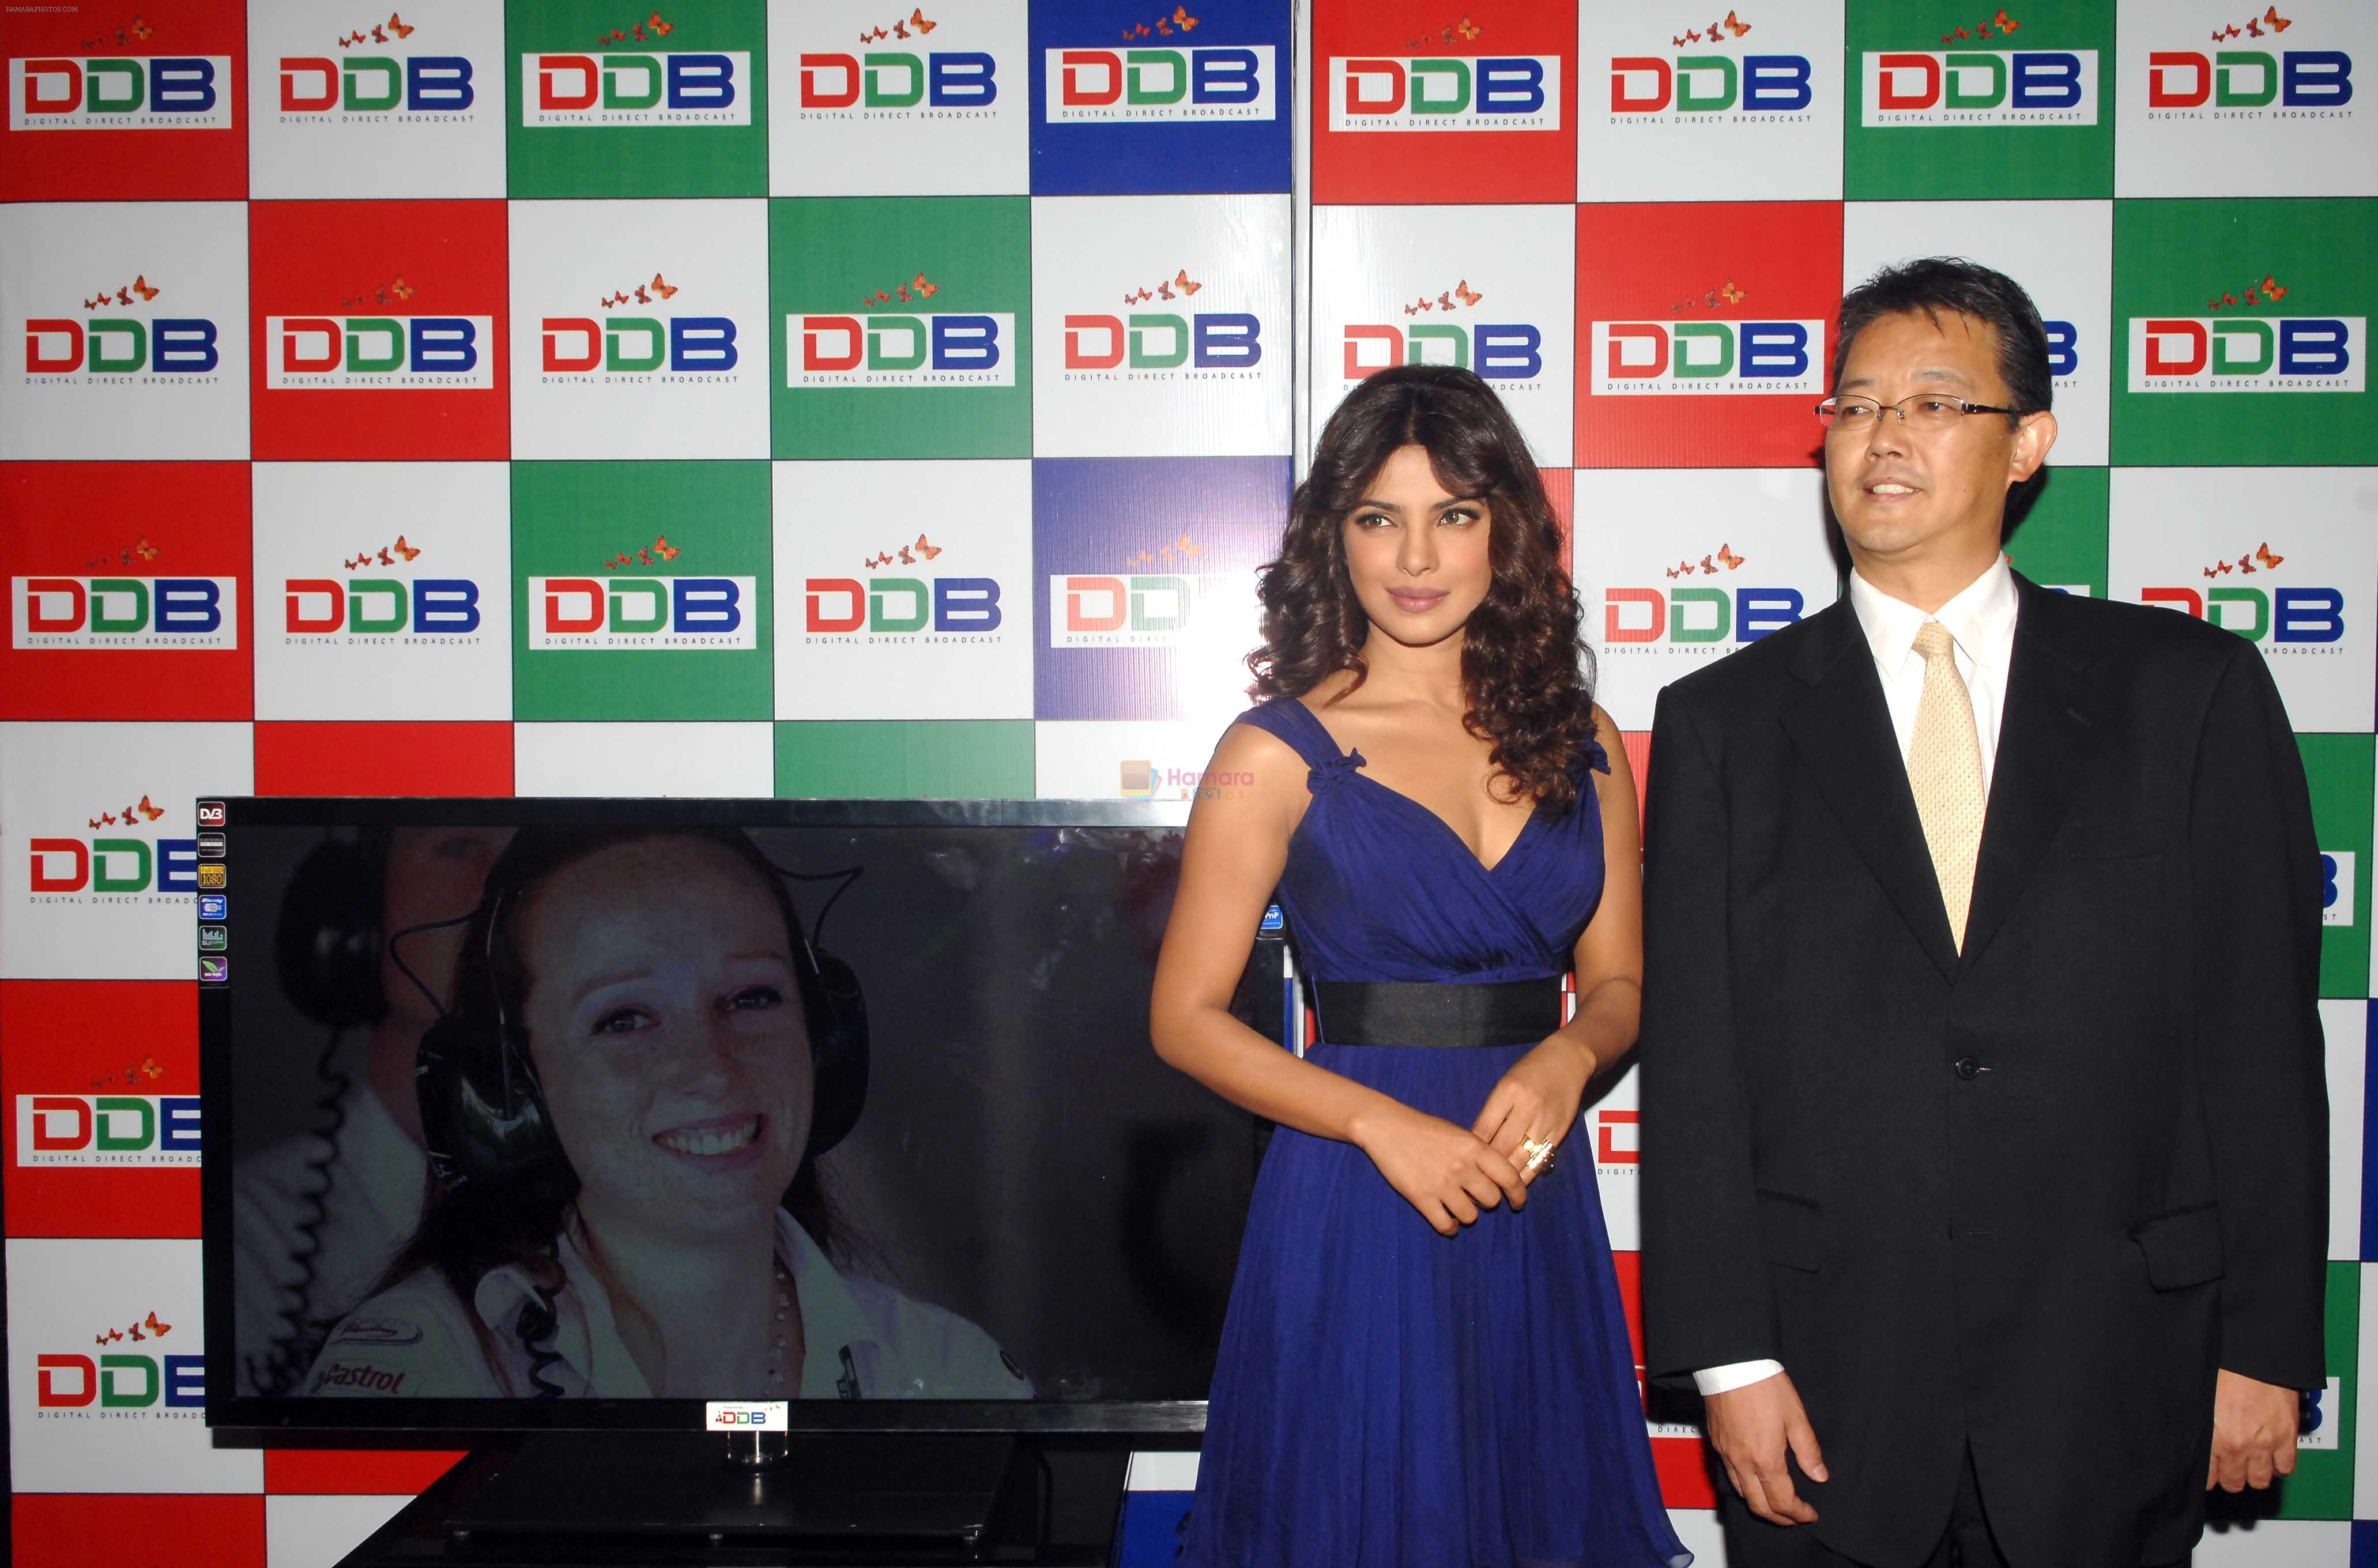 Priyanka Chopra launches Digital Direct Broadcasting in Taj Land Hotel, Bandra, Mumbai on 11th July 2012